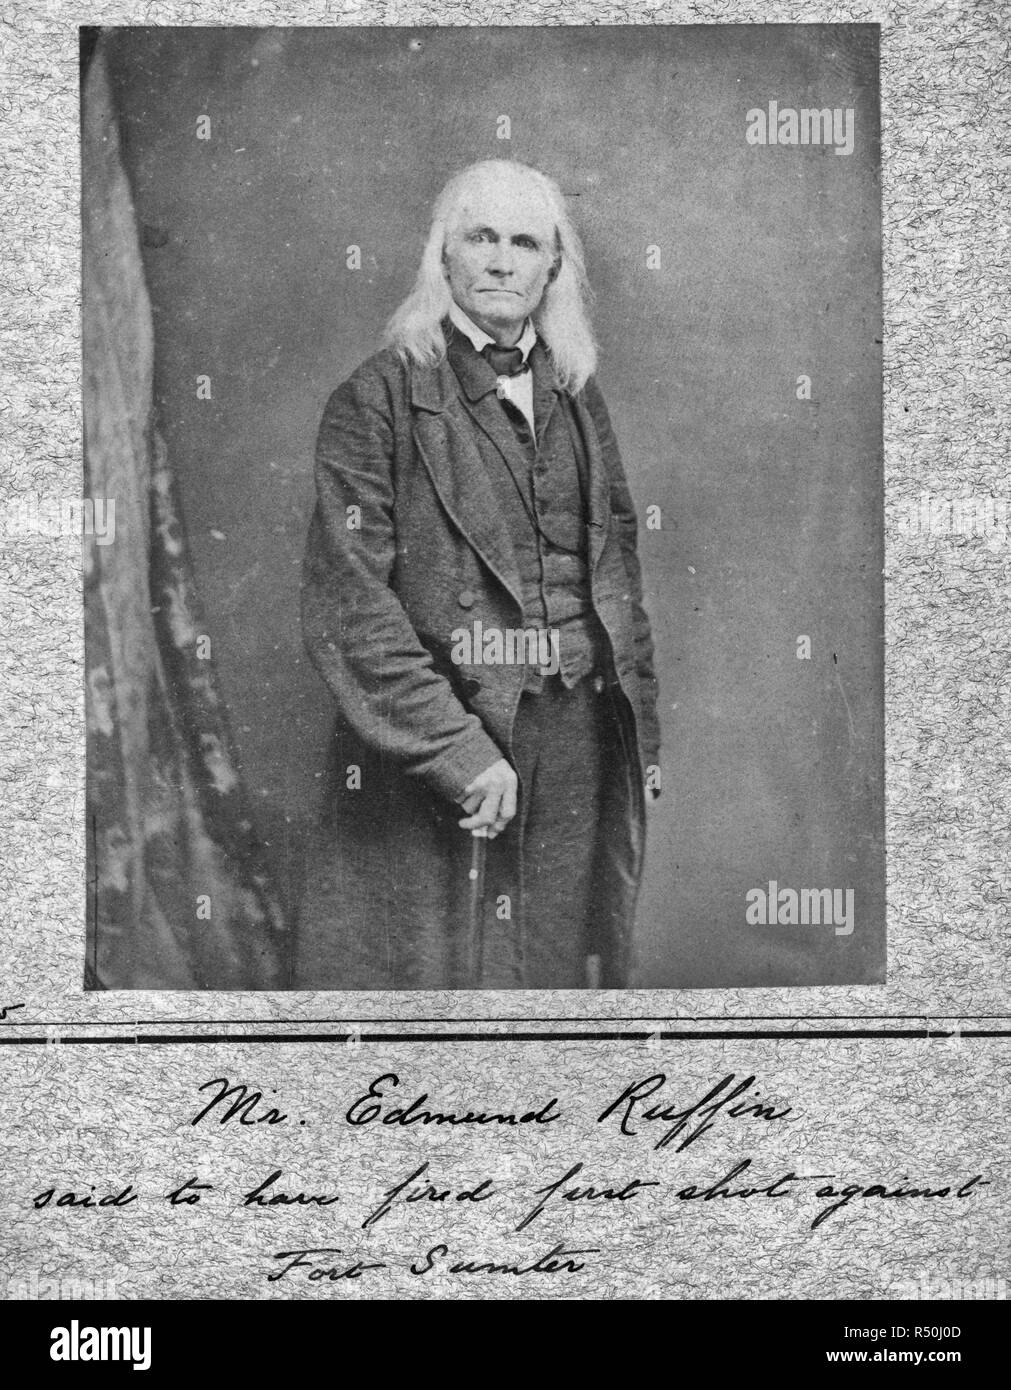 Edmund Ruffin. Fired the 1st shot in the Civil War. Killed himself at close of War, circa 1863 - Stock Image